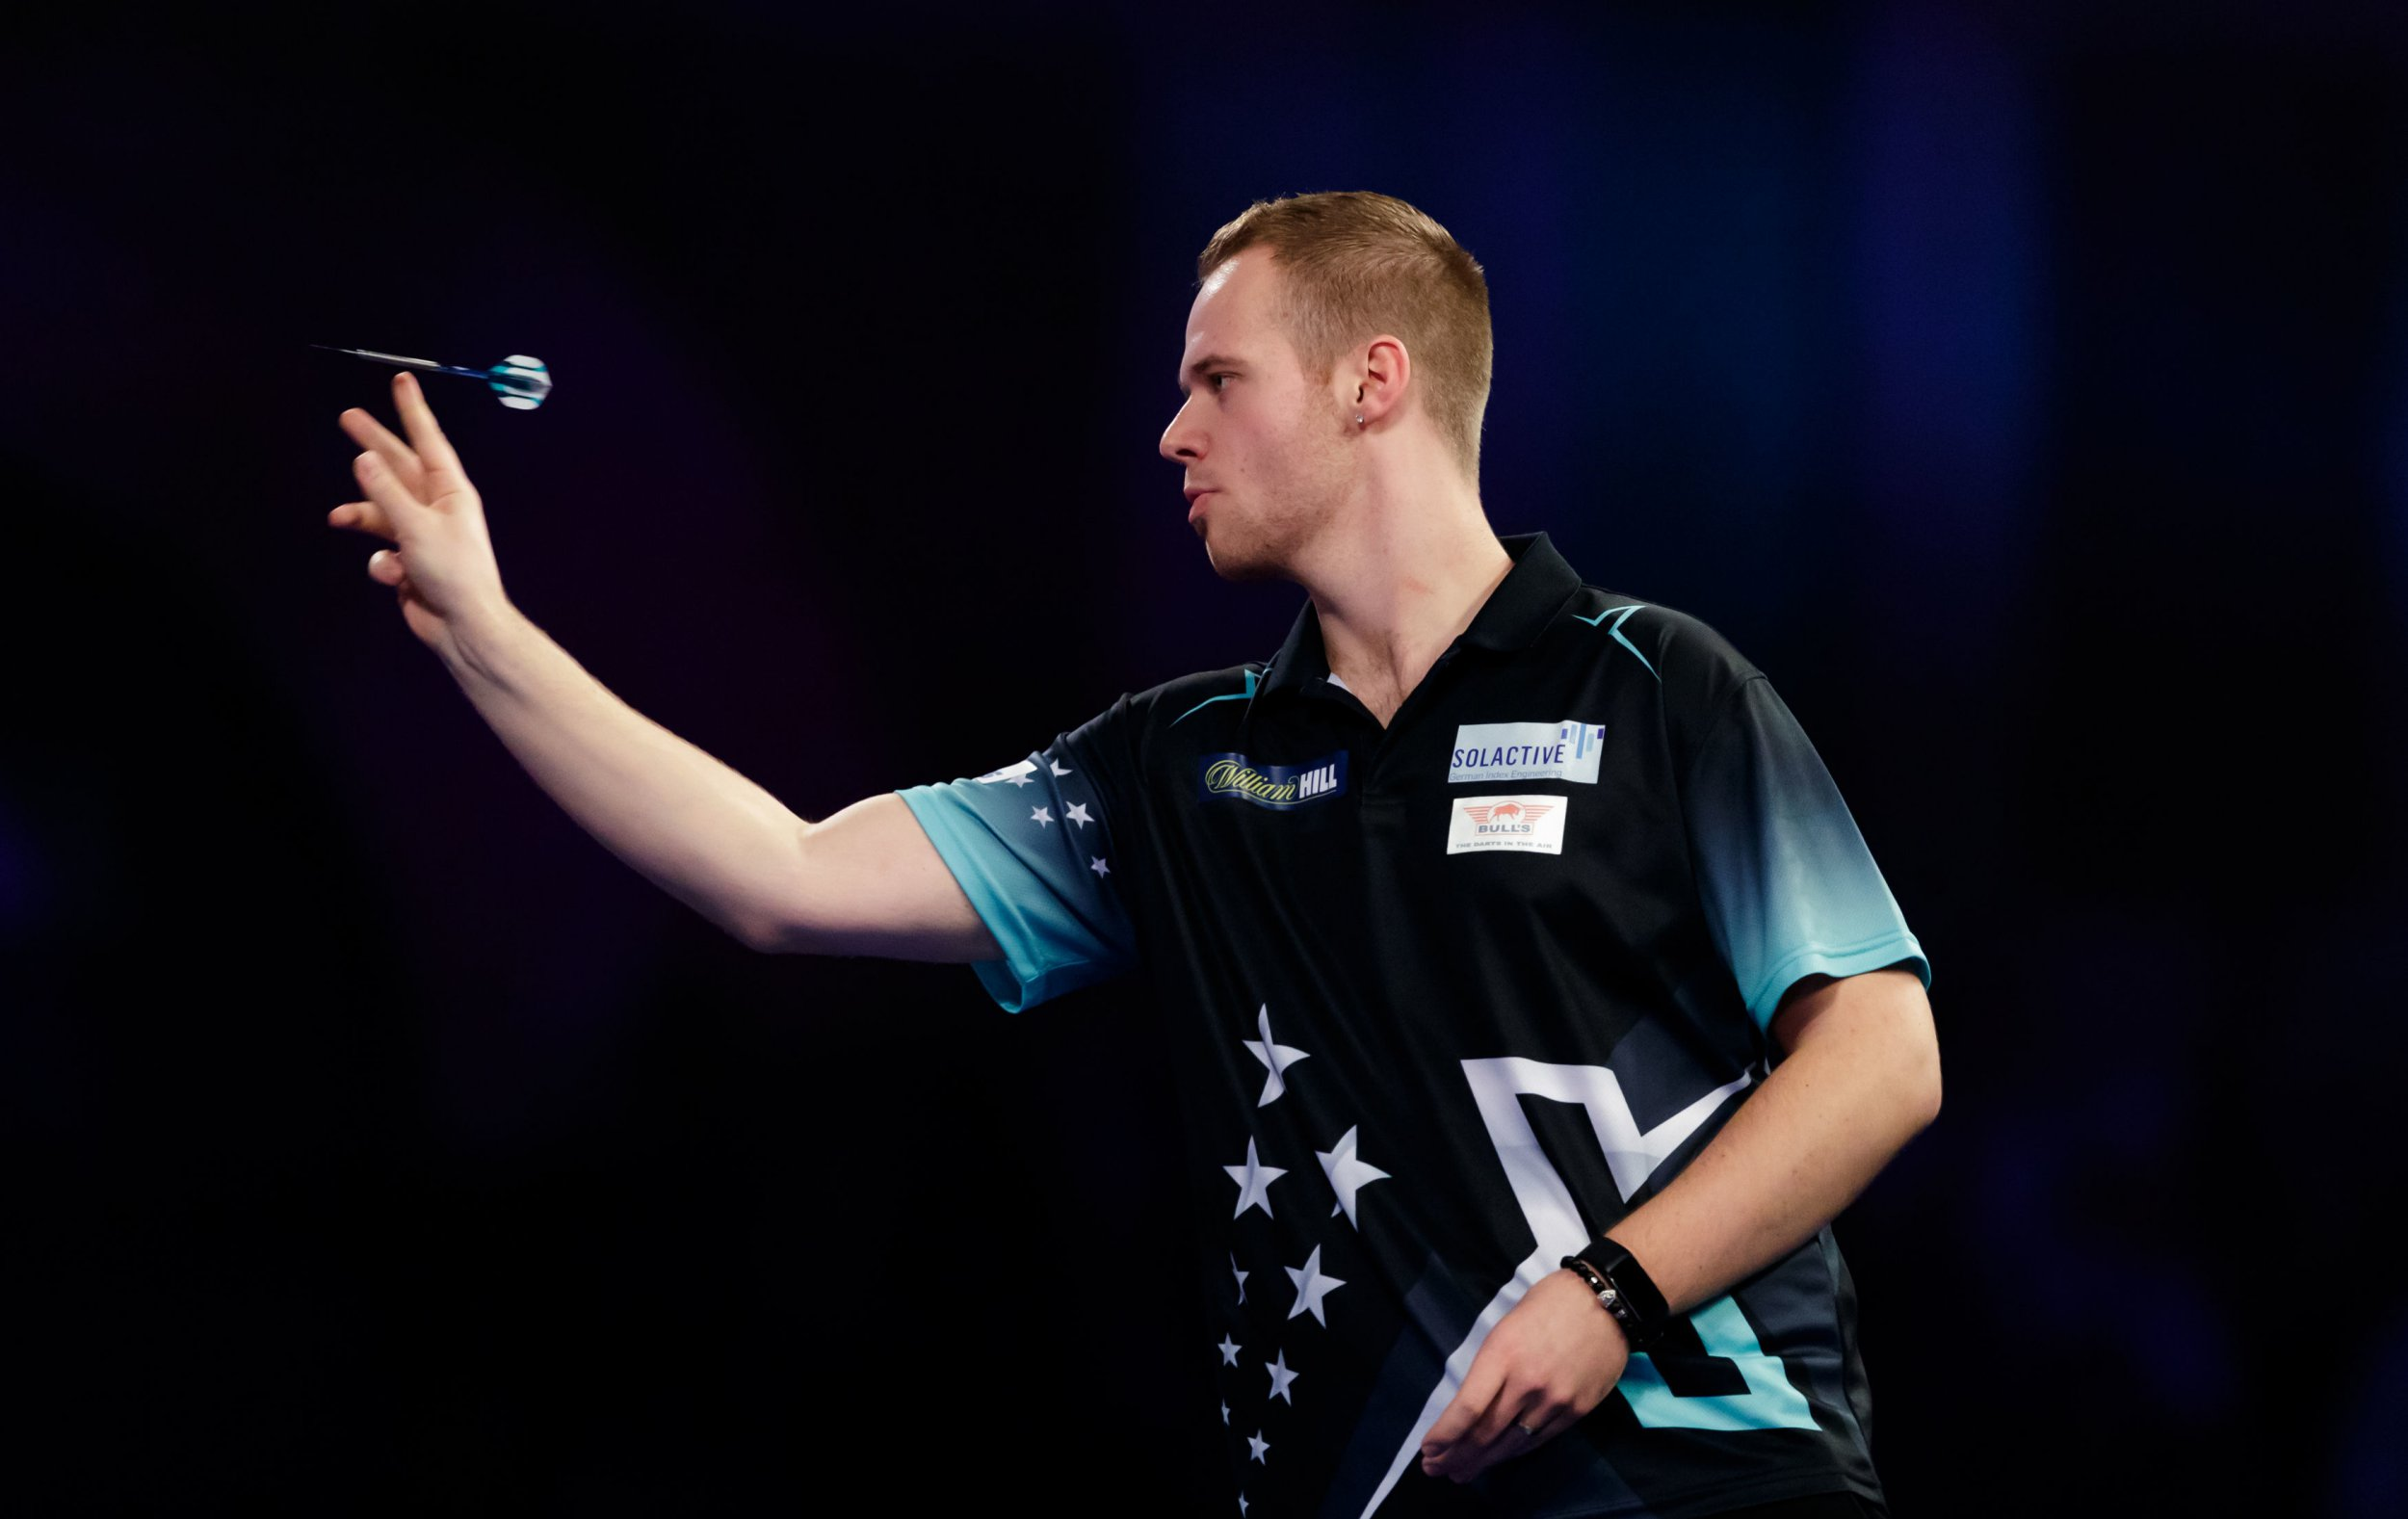 Max Hopp during his match against Michael van Gerwen during day ten of the William Hill World Darts Championships at Alexandra Palace, London. PRESS ASSOCIATION Photo. Picture date: Saturday December 22, 2018. Photo credit should read: John Walton/PA Wire